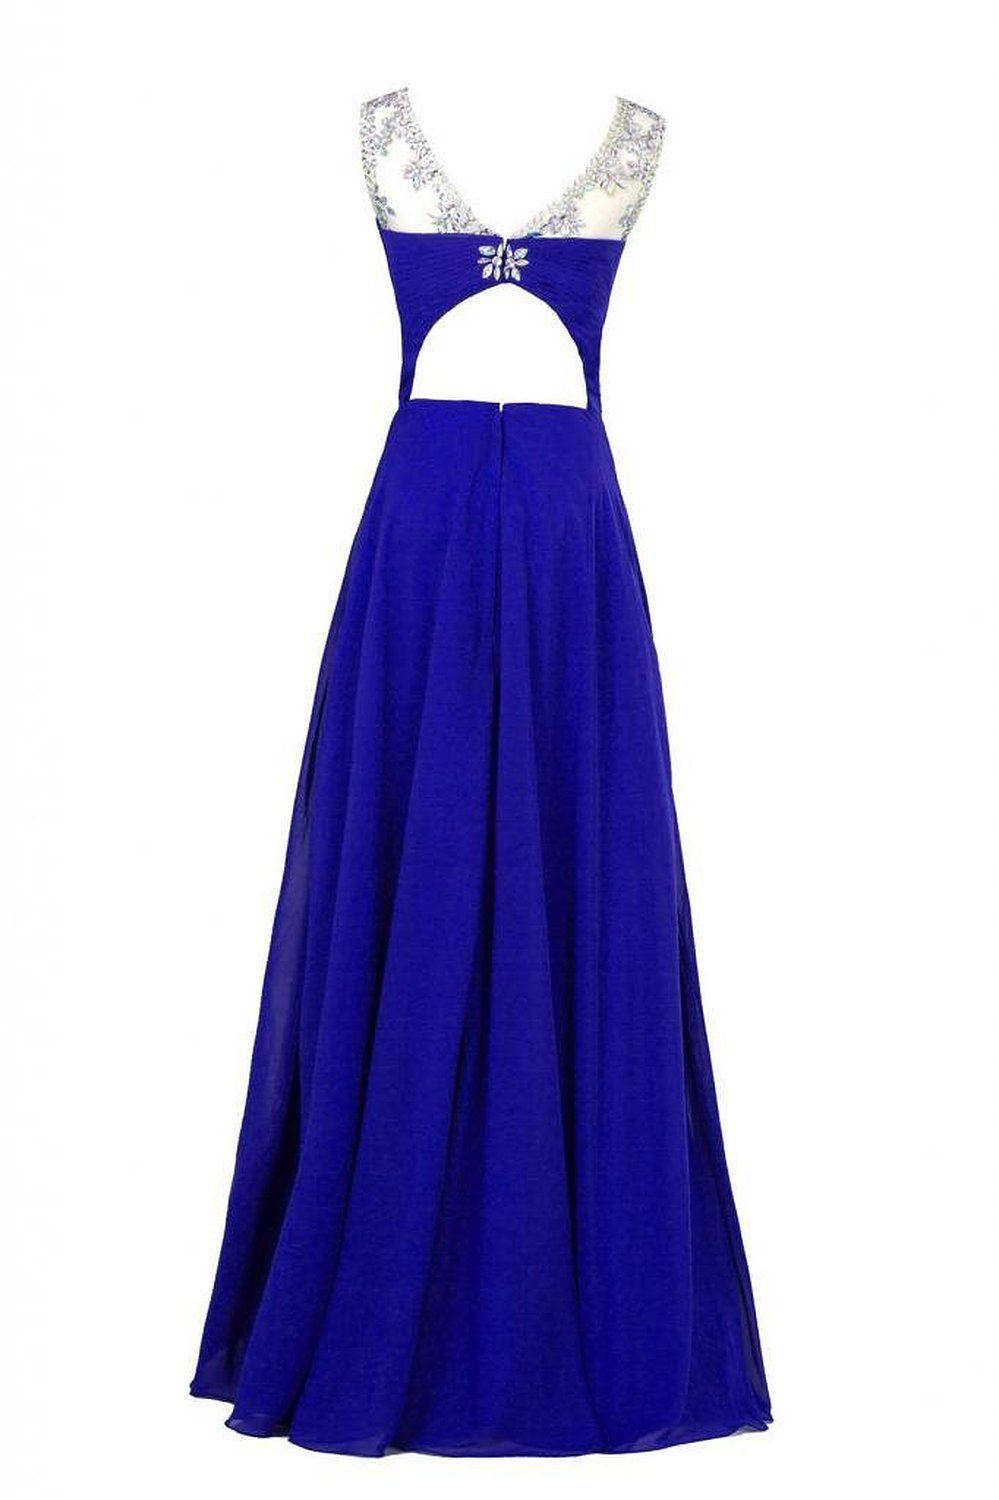 b596a60988f Royal Blue Prom Dress Amazon - Gomes Weine AG